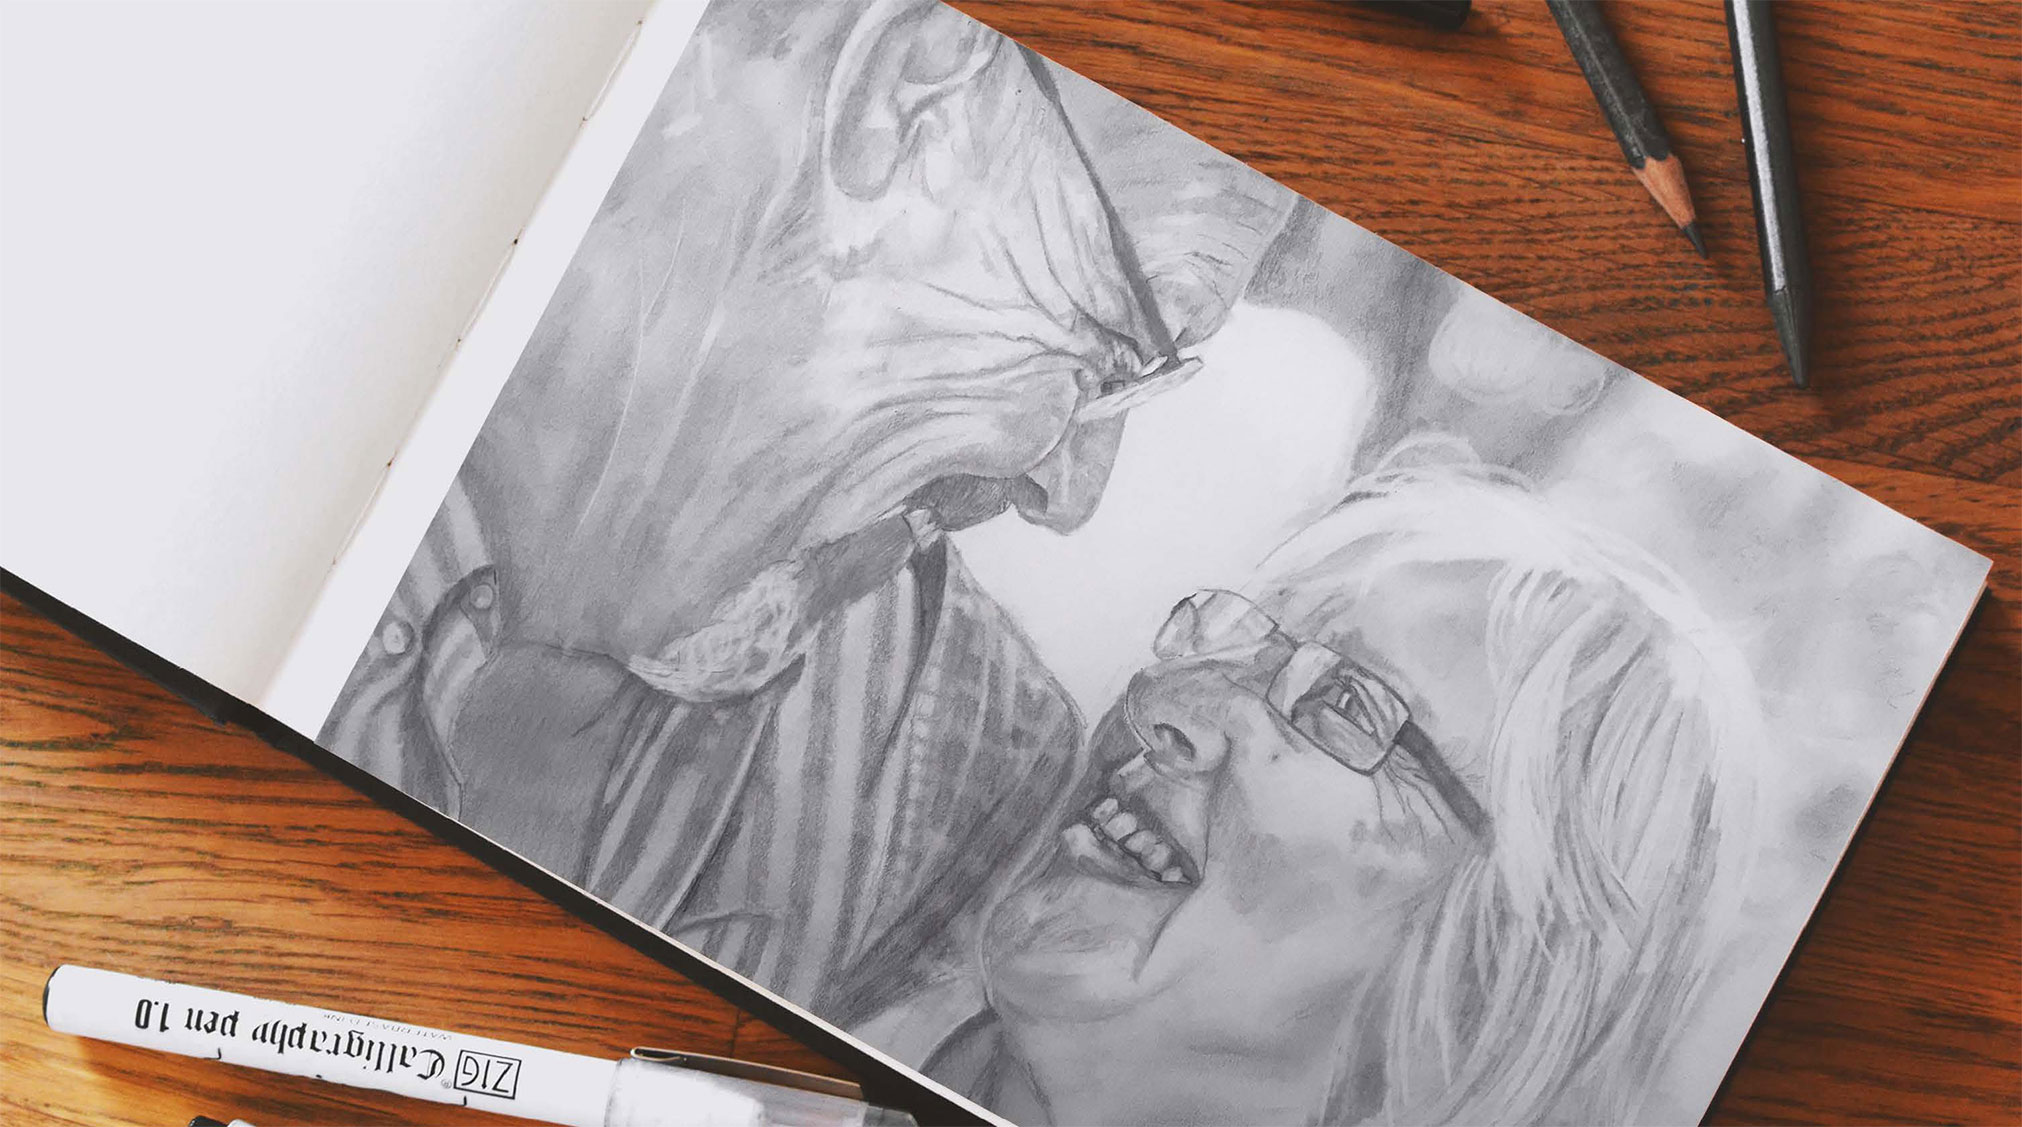 This is a sketch of my grandparents that I created; it shows my creativeness, my passions, and my ability to sketch out project ideas and beginning sketches.